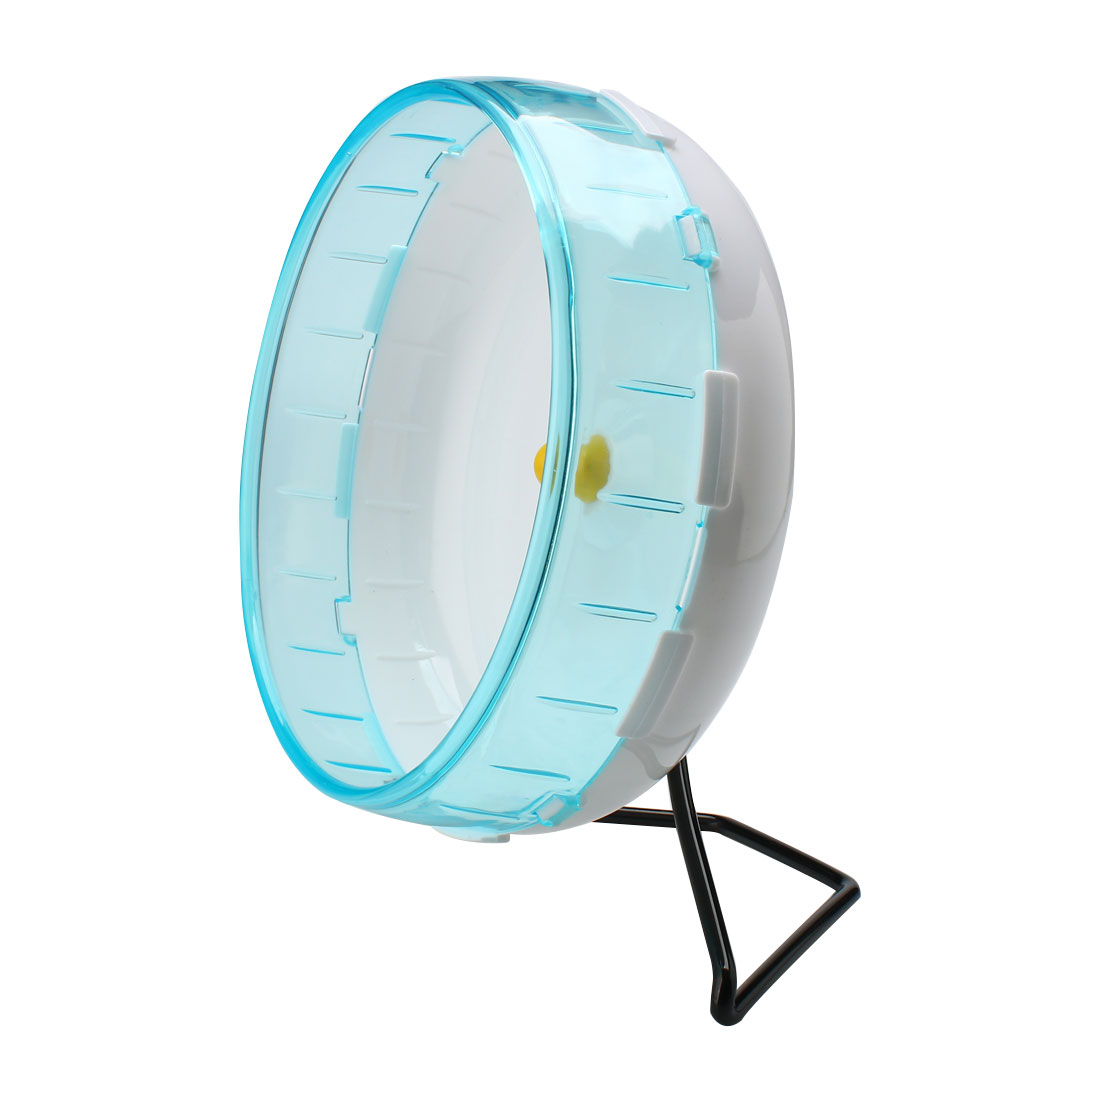 Pet Hamster Gerbil Plastic Exercise Sport Play Stand Wheel Toy Holder Sky Blue